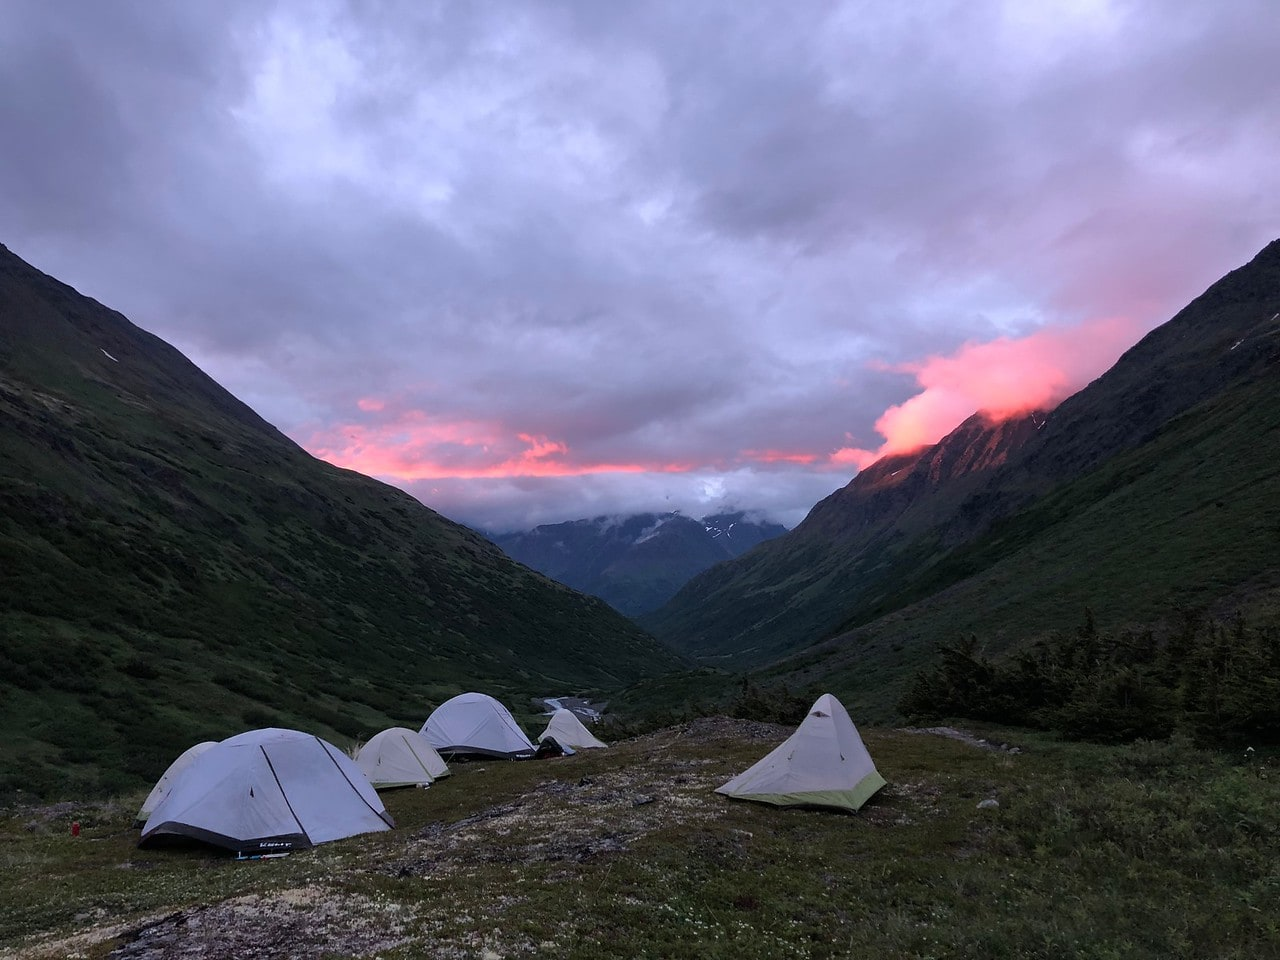 Hikers are tent camping while on a service program in Alaska this Summer